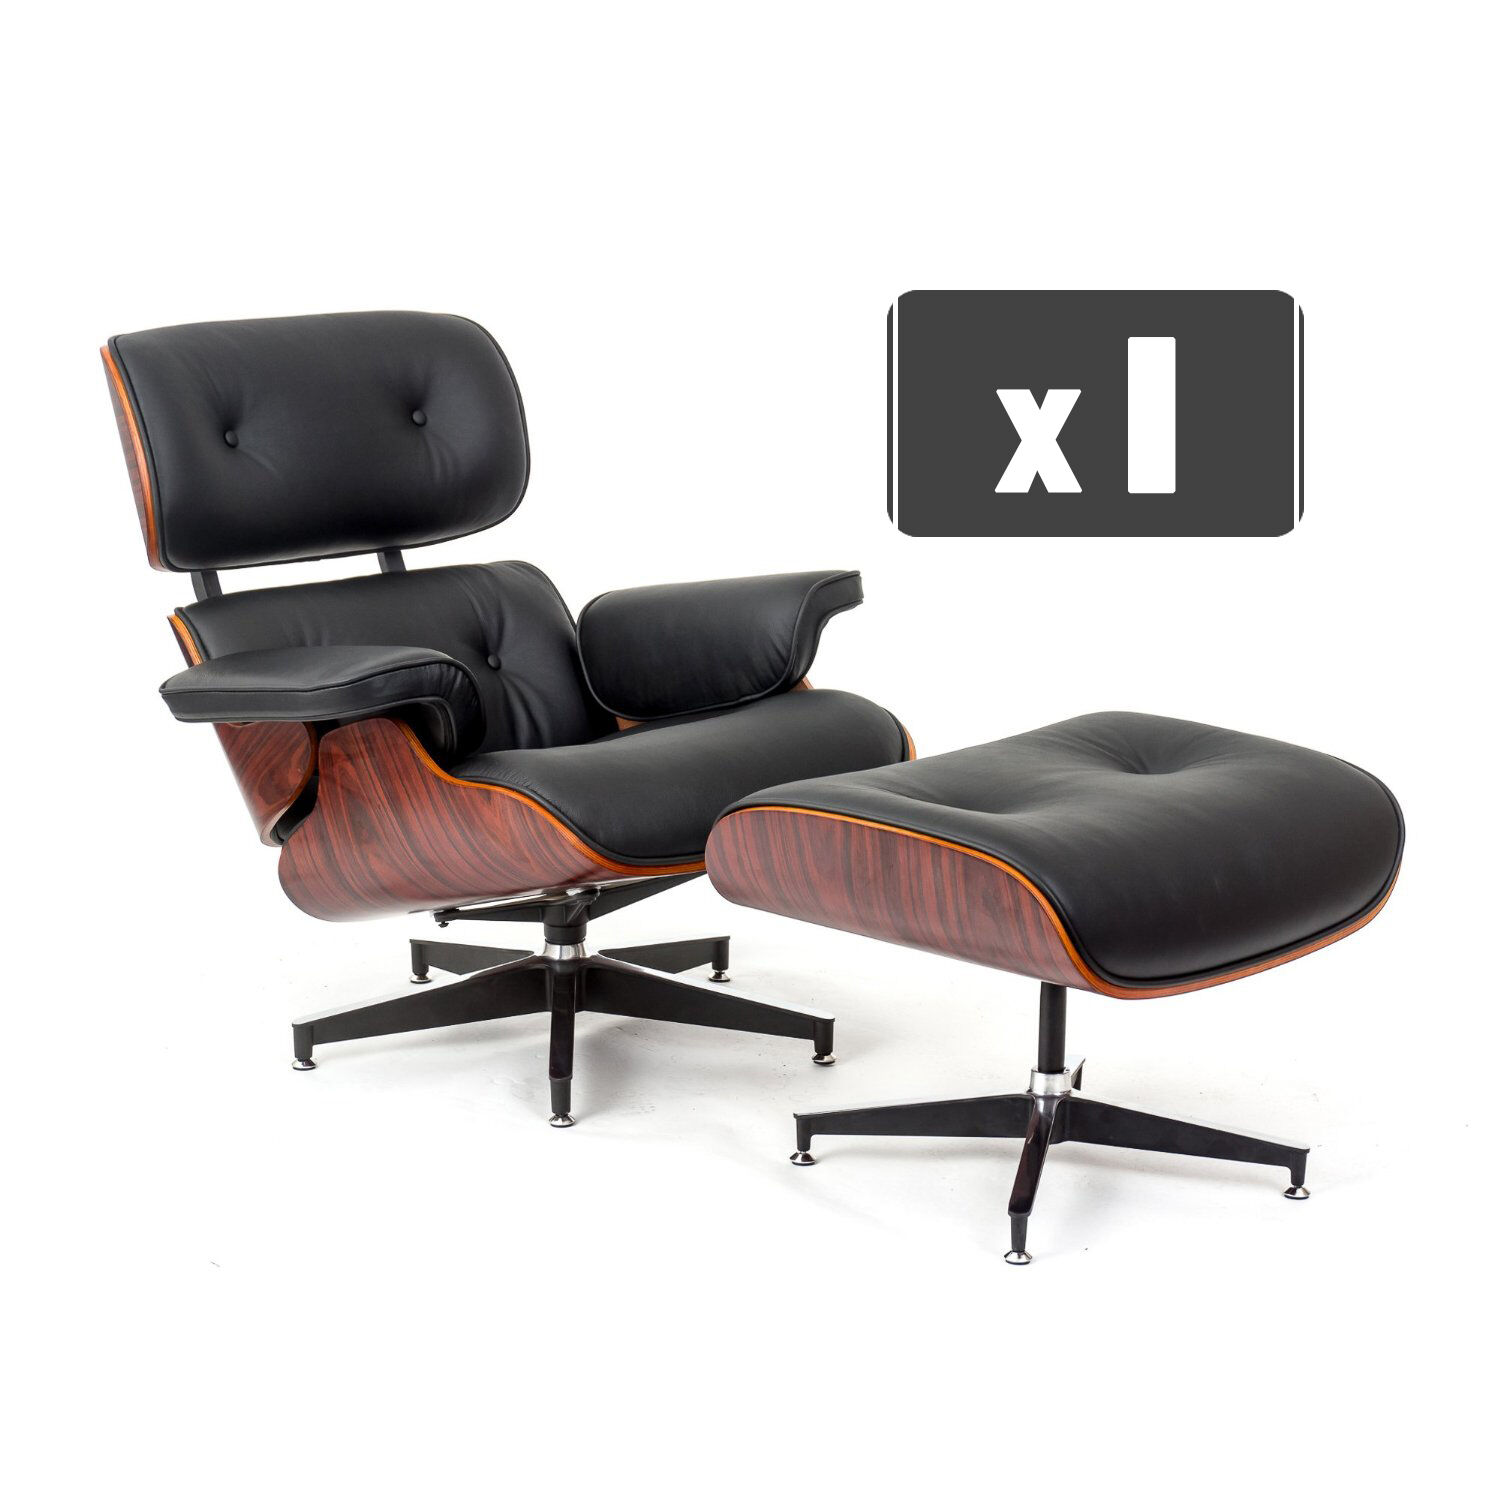 Replica charles eames lounge chair ottoman in black for Eames replica